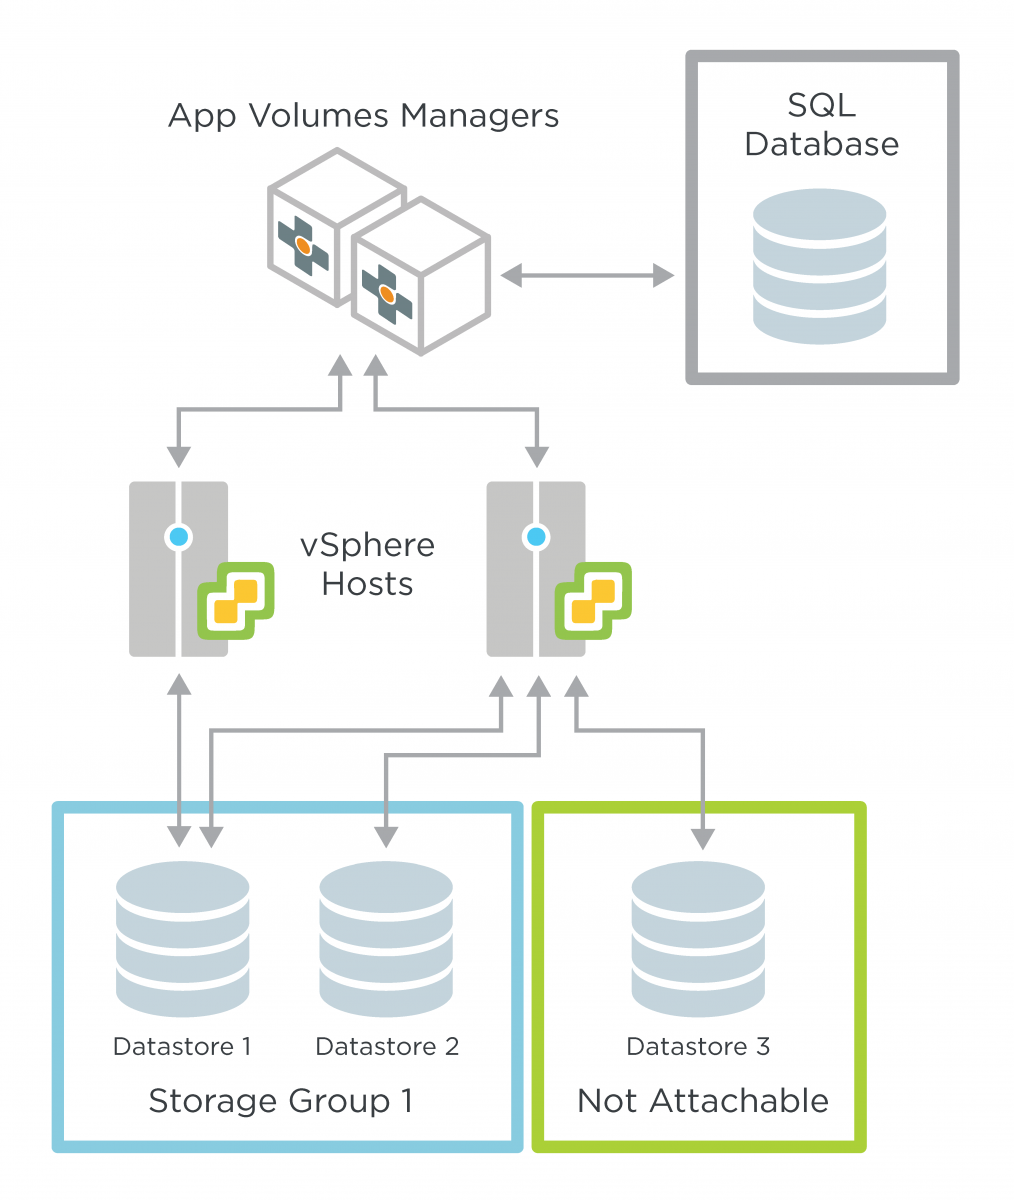 Logical Architecture of an App Volumes Deployment